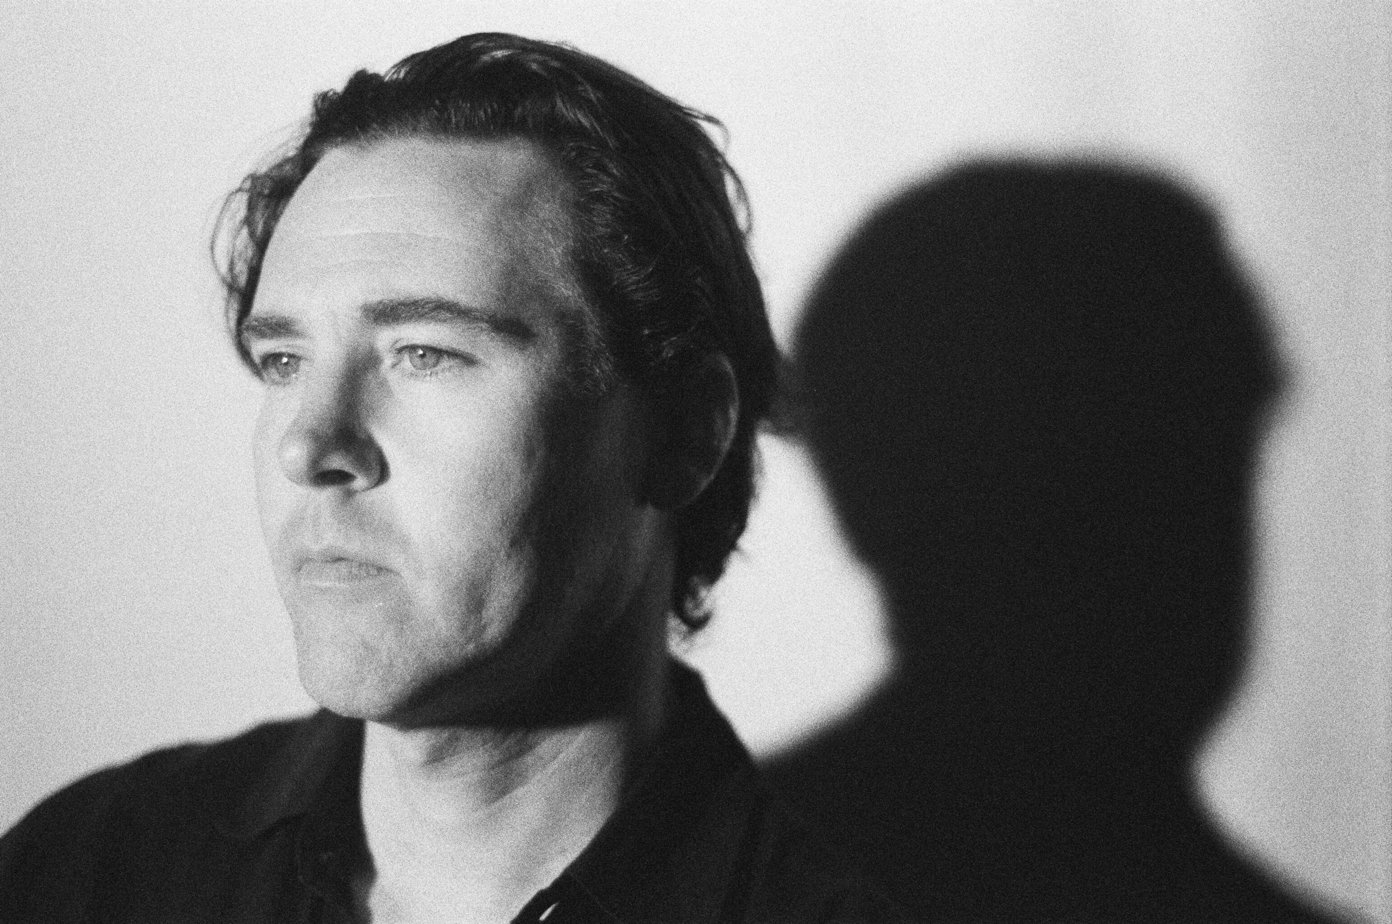 Hear @cassmccombs' new psychedelic experiment 'Noise Suite For The Green Party' https://t.co/GFdNTQ6IHO https://t.co/BpIHoQOCiX